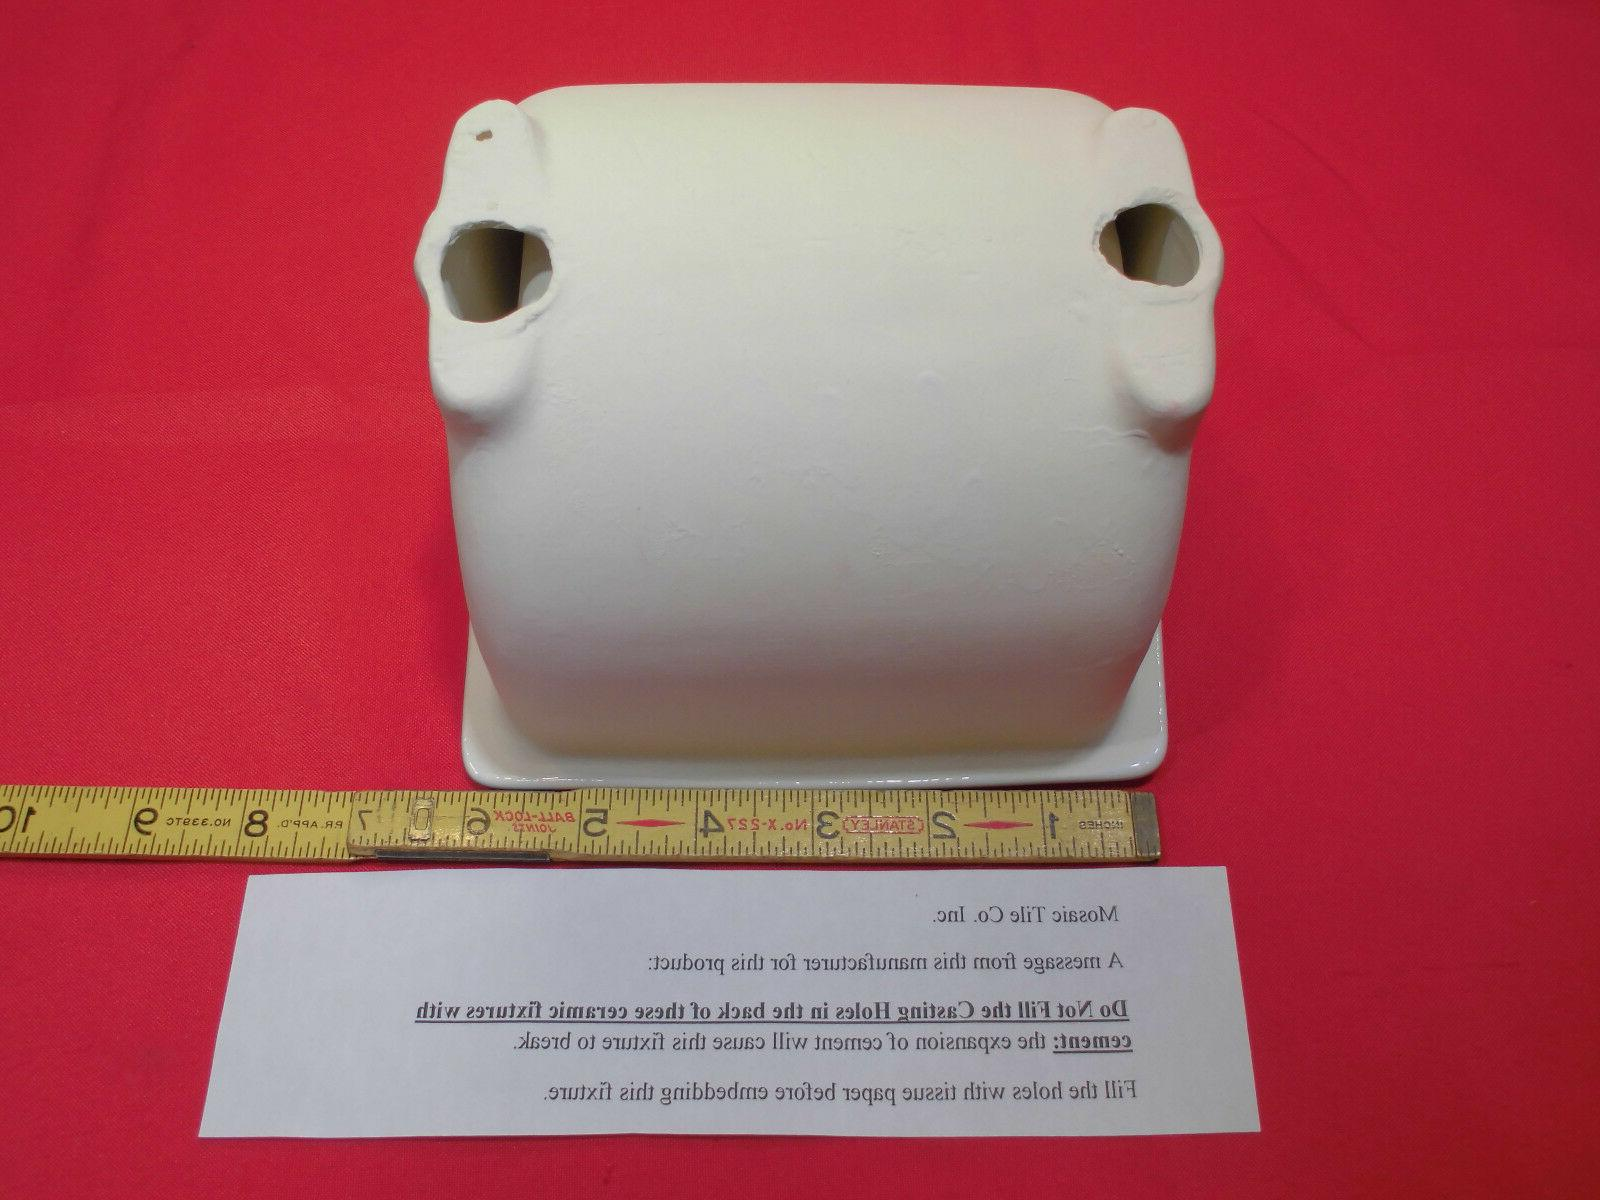 Vintage *Brilliant White* Full-Recessed Glossy Ceramic Toilet Paper Holder   NOS